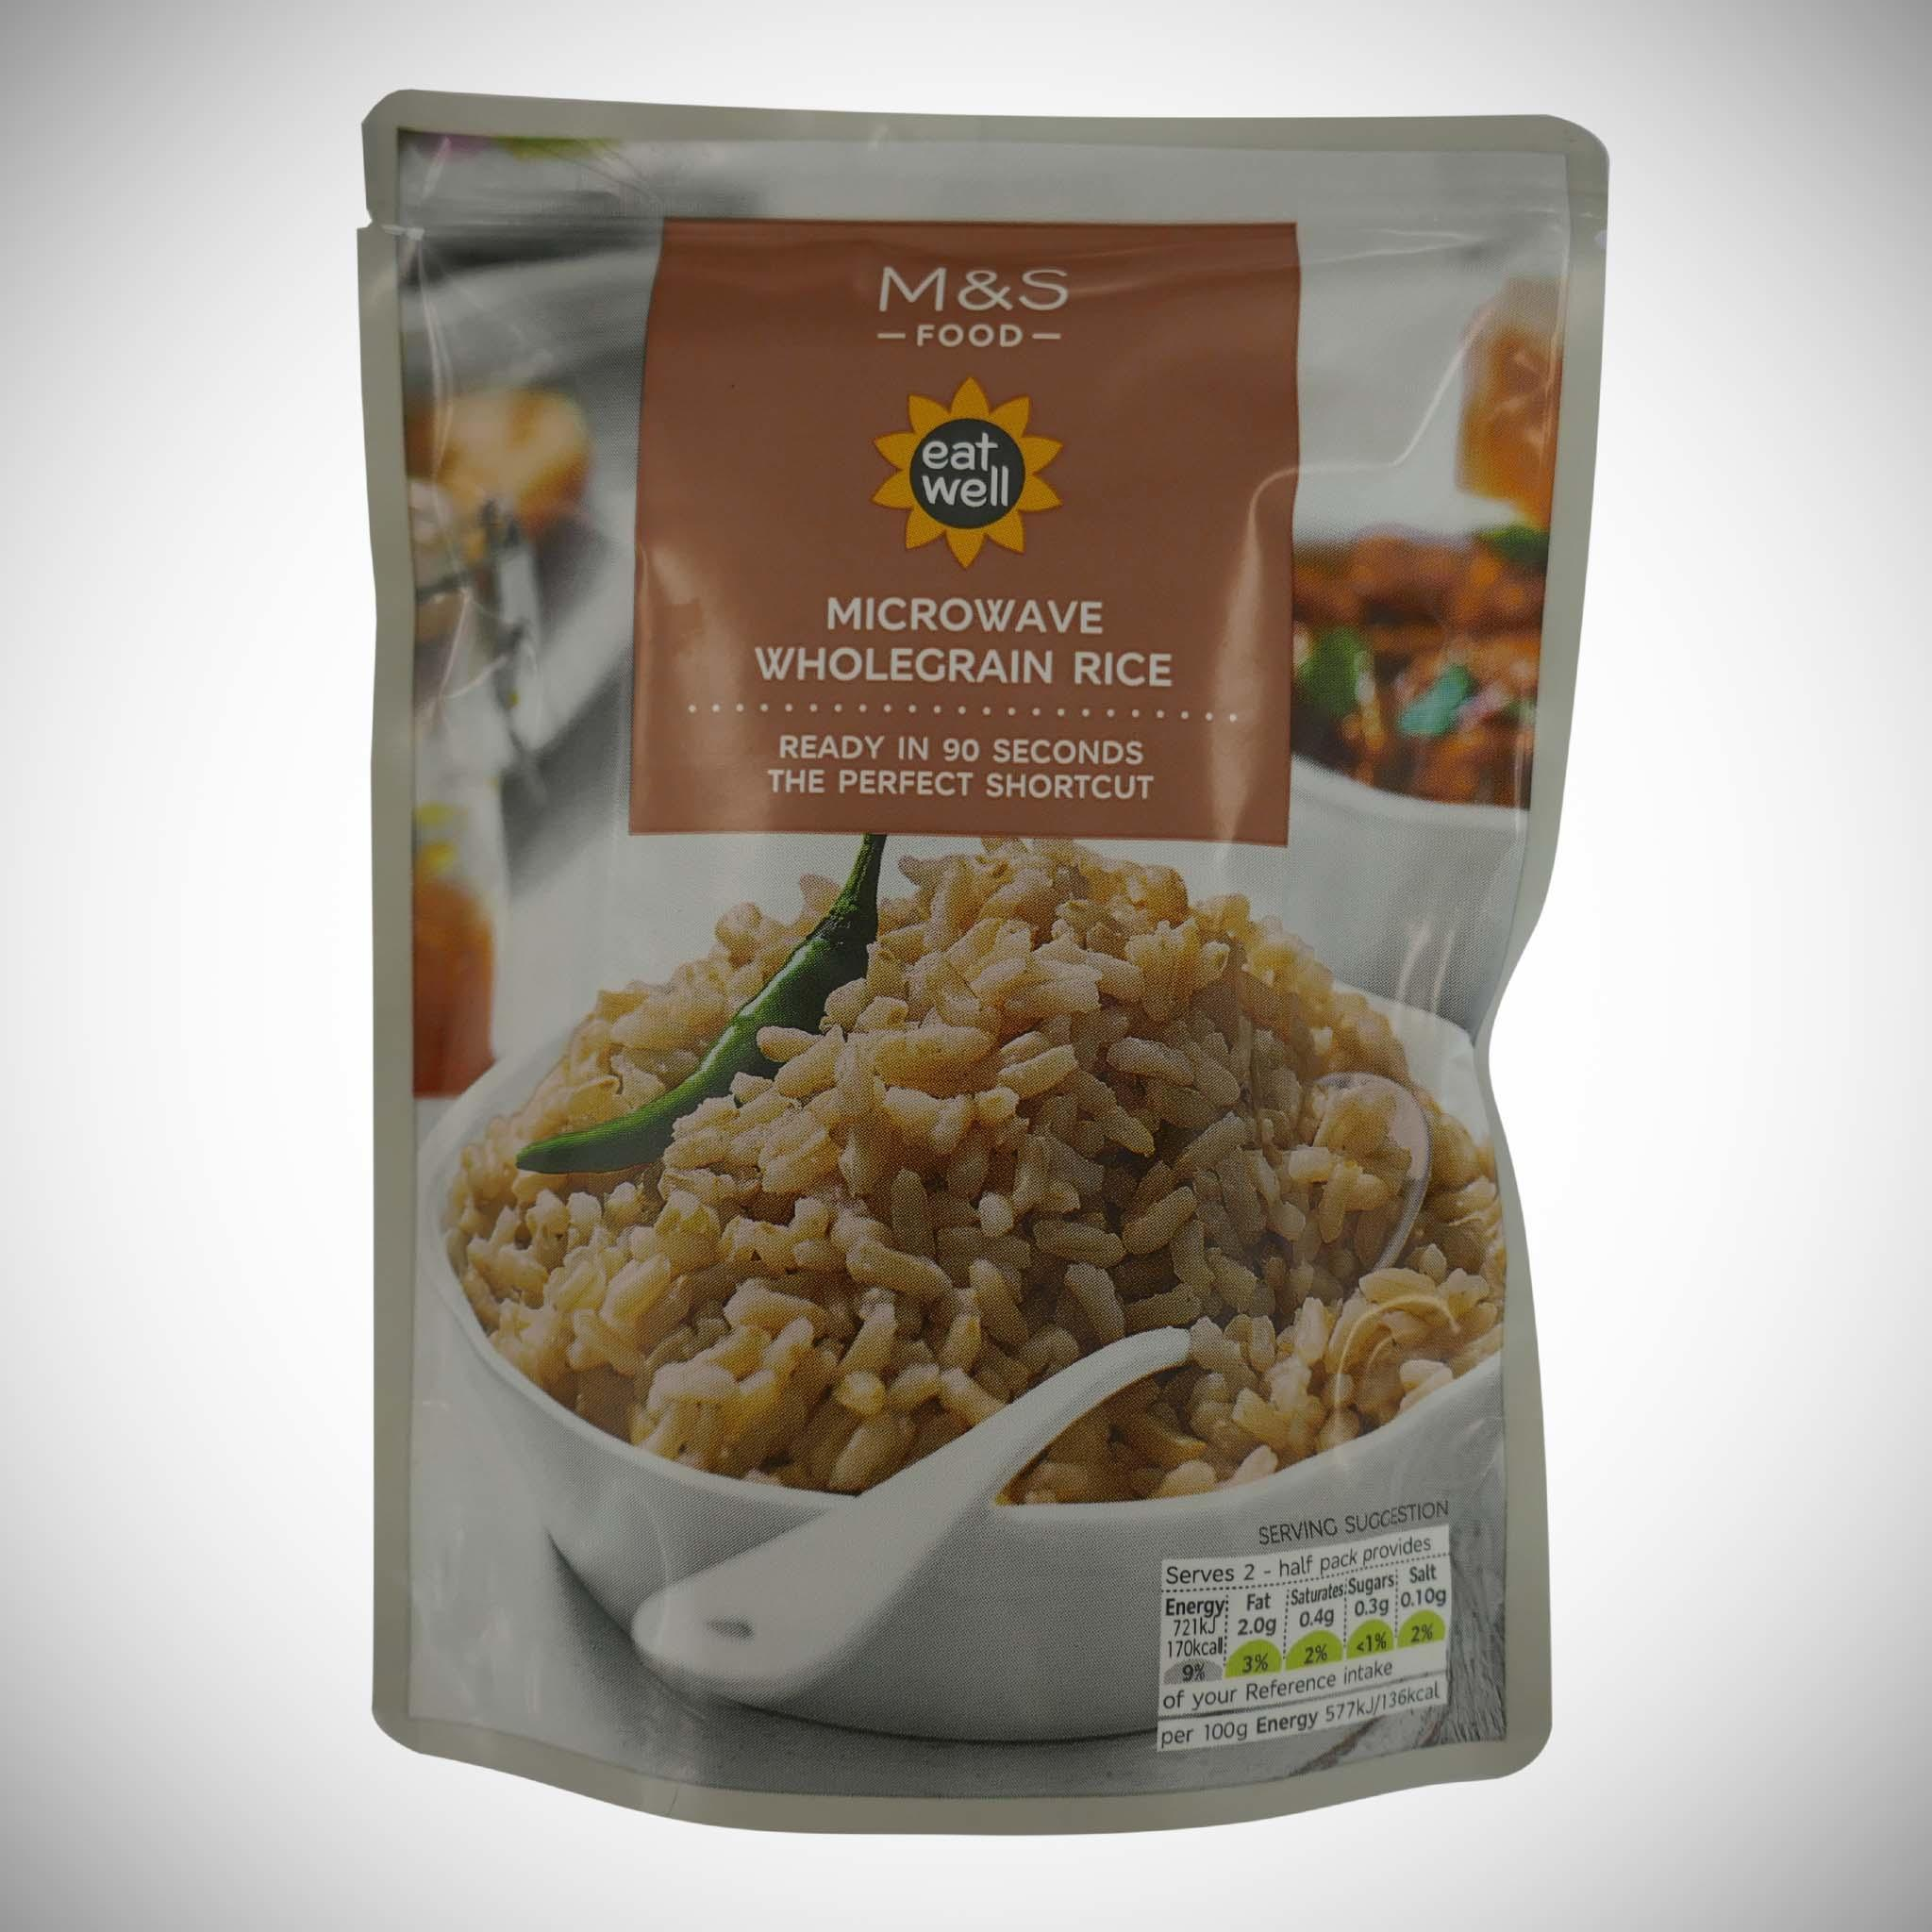 Microwave Wholegrain Rice